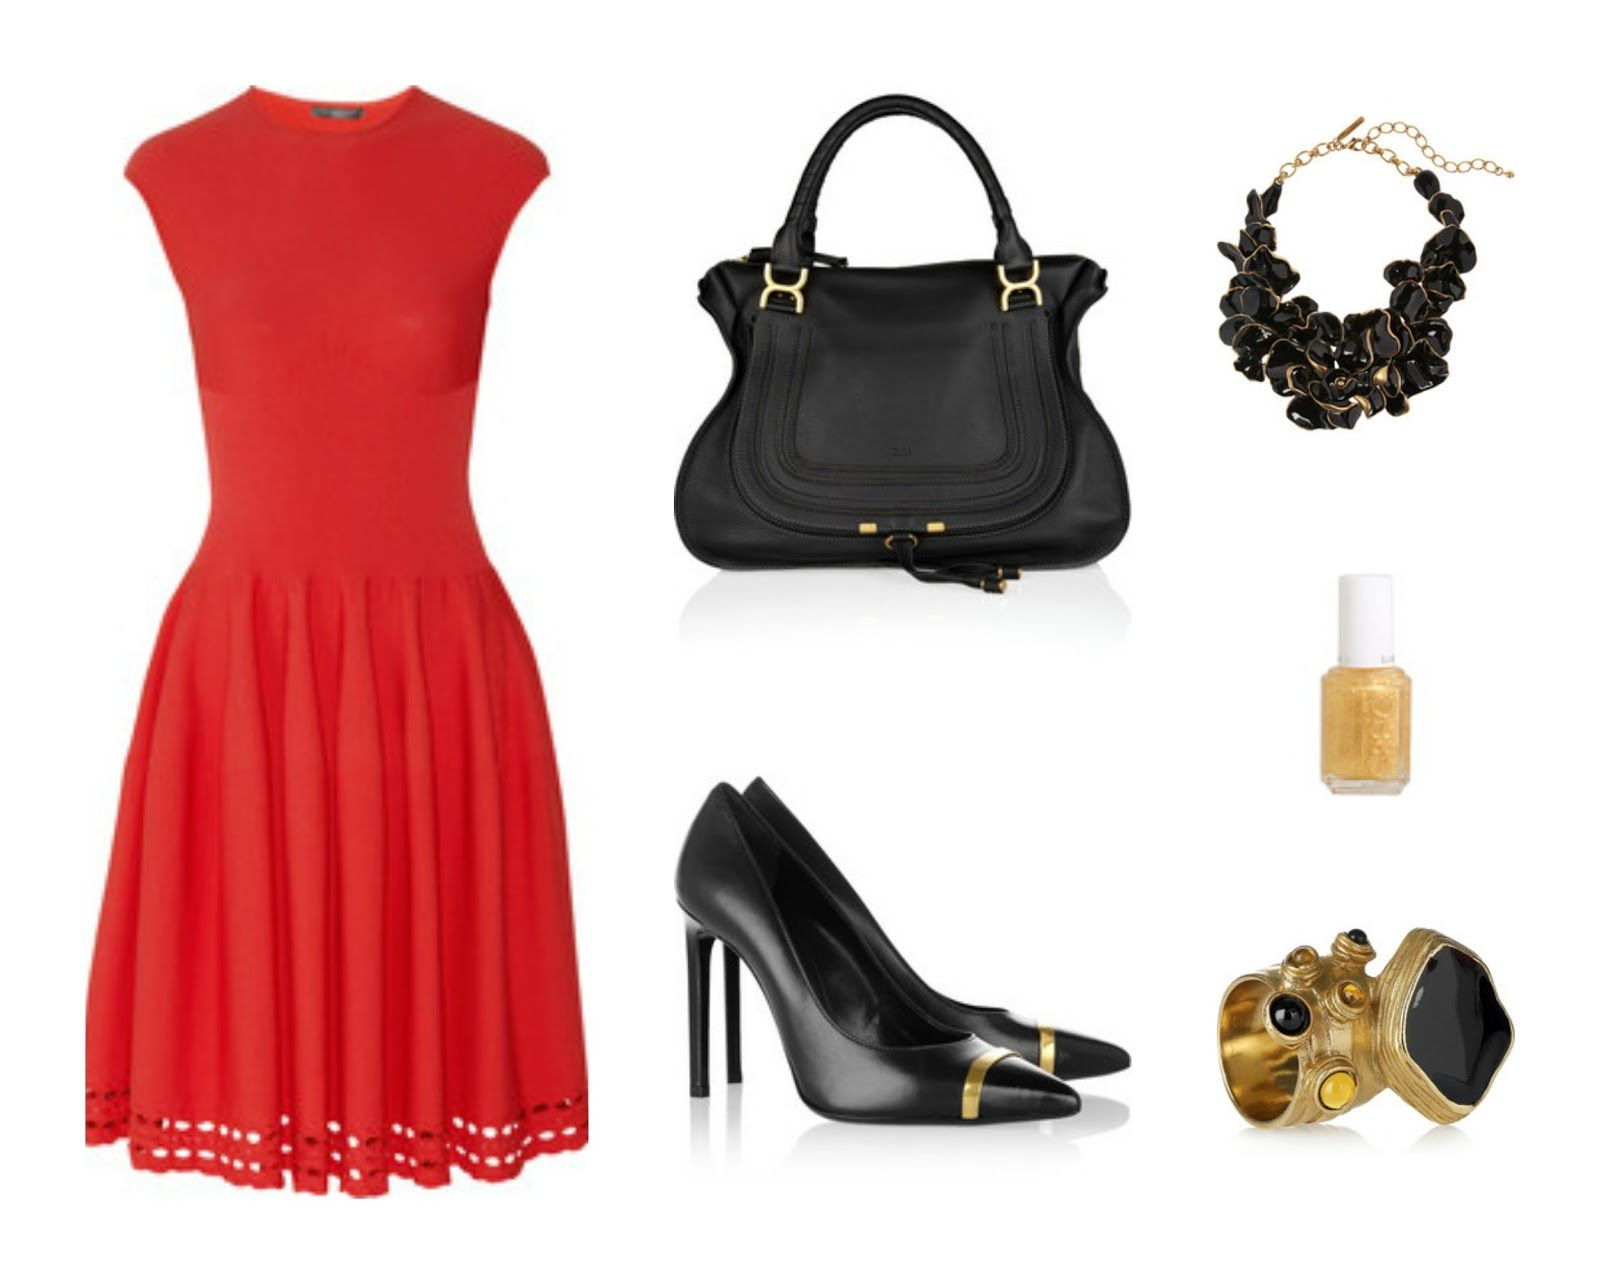 Black Gold Accessories Are A Chic Way To Jazz Up A Simple Little Red Dress Little Red Dress Red Dress Fashion [ 1284 x 1600 Pixel ]